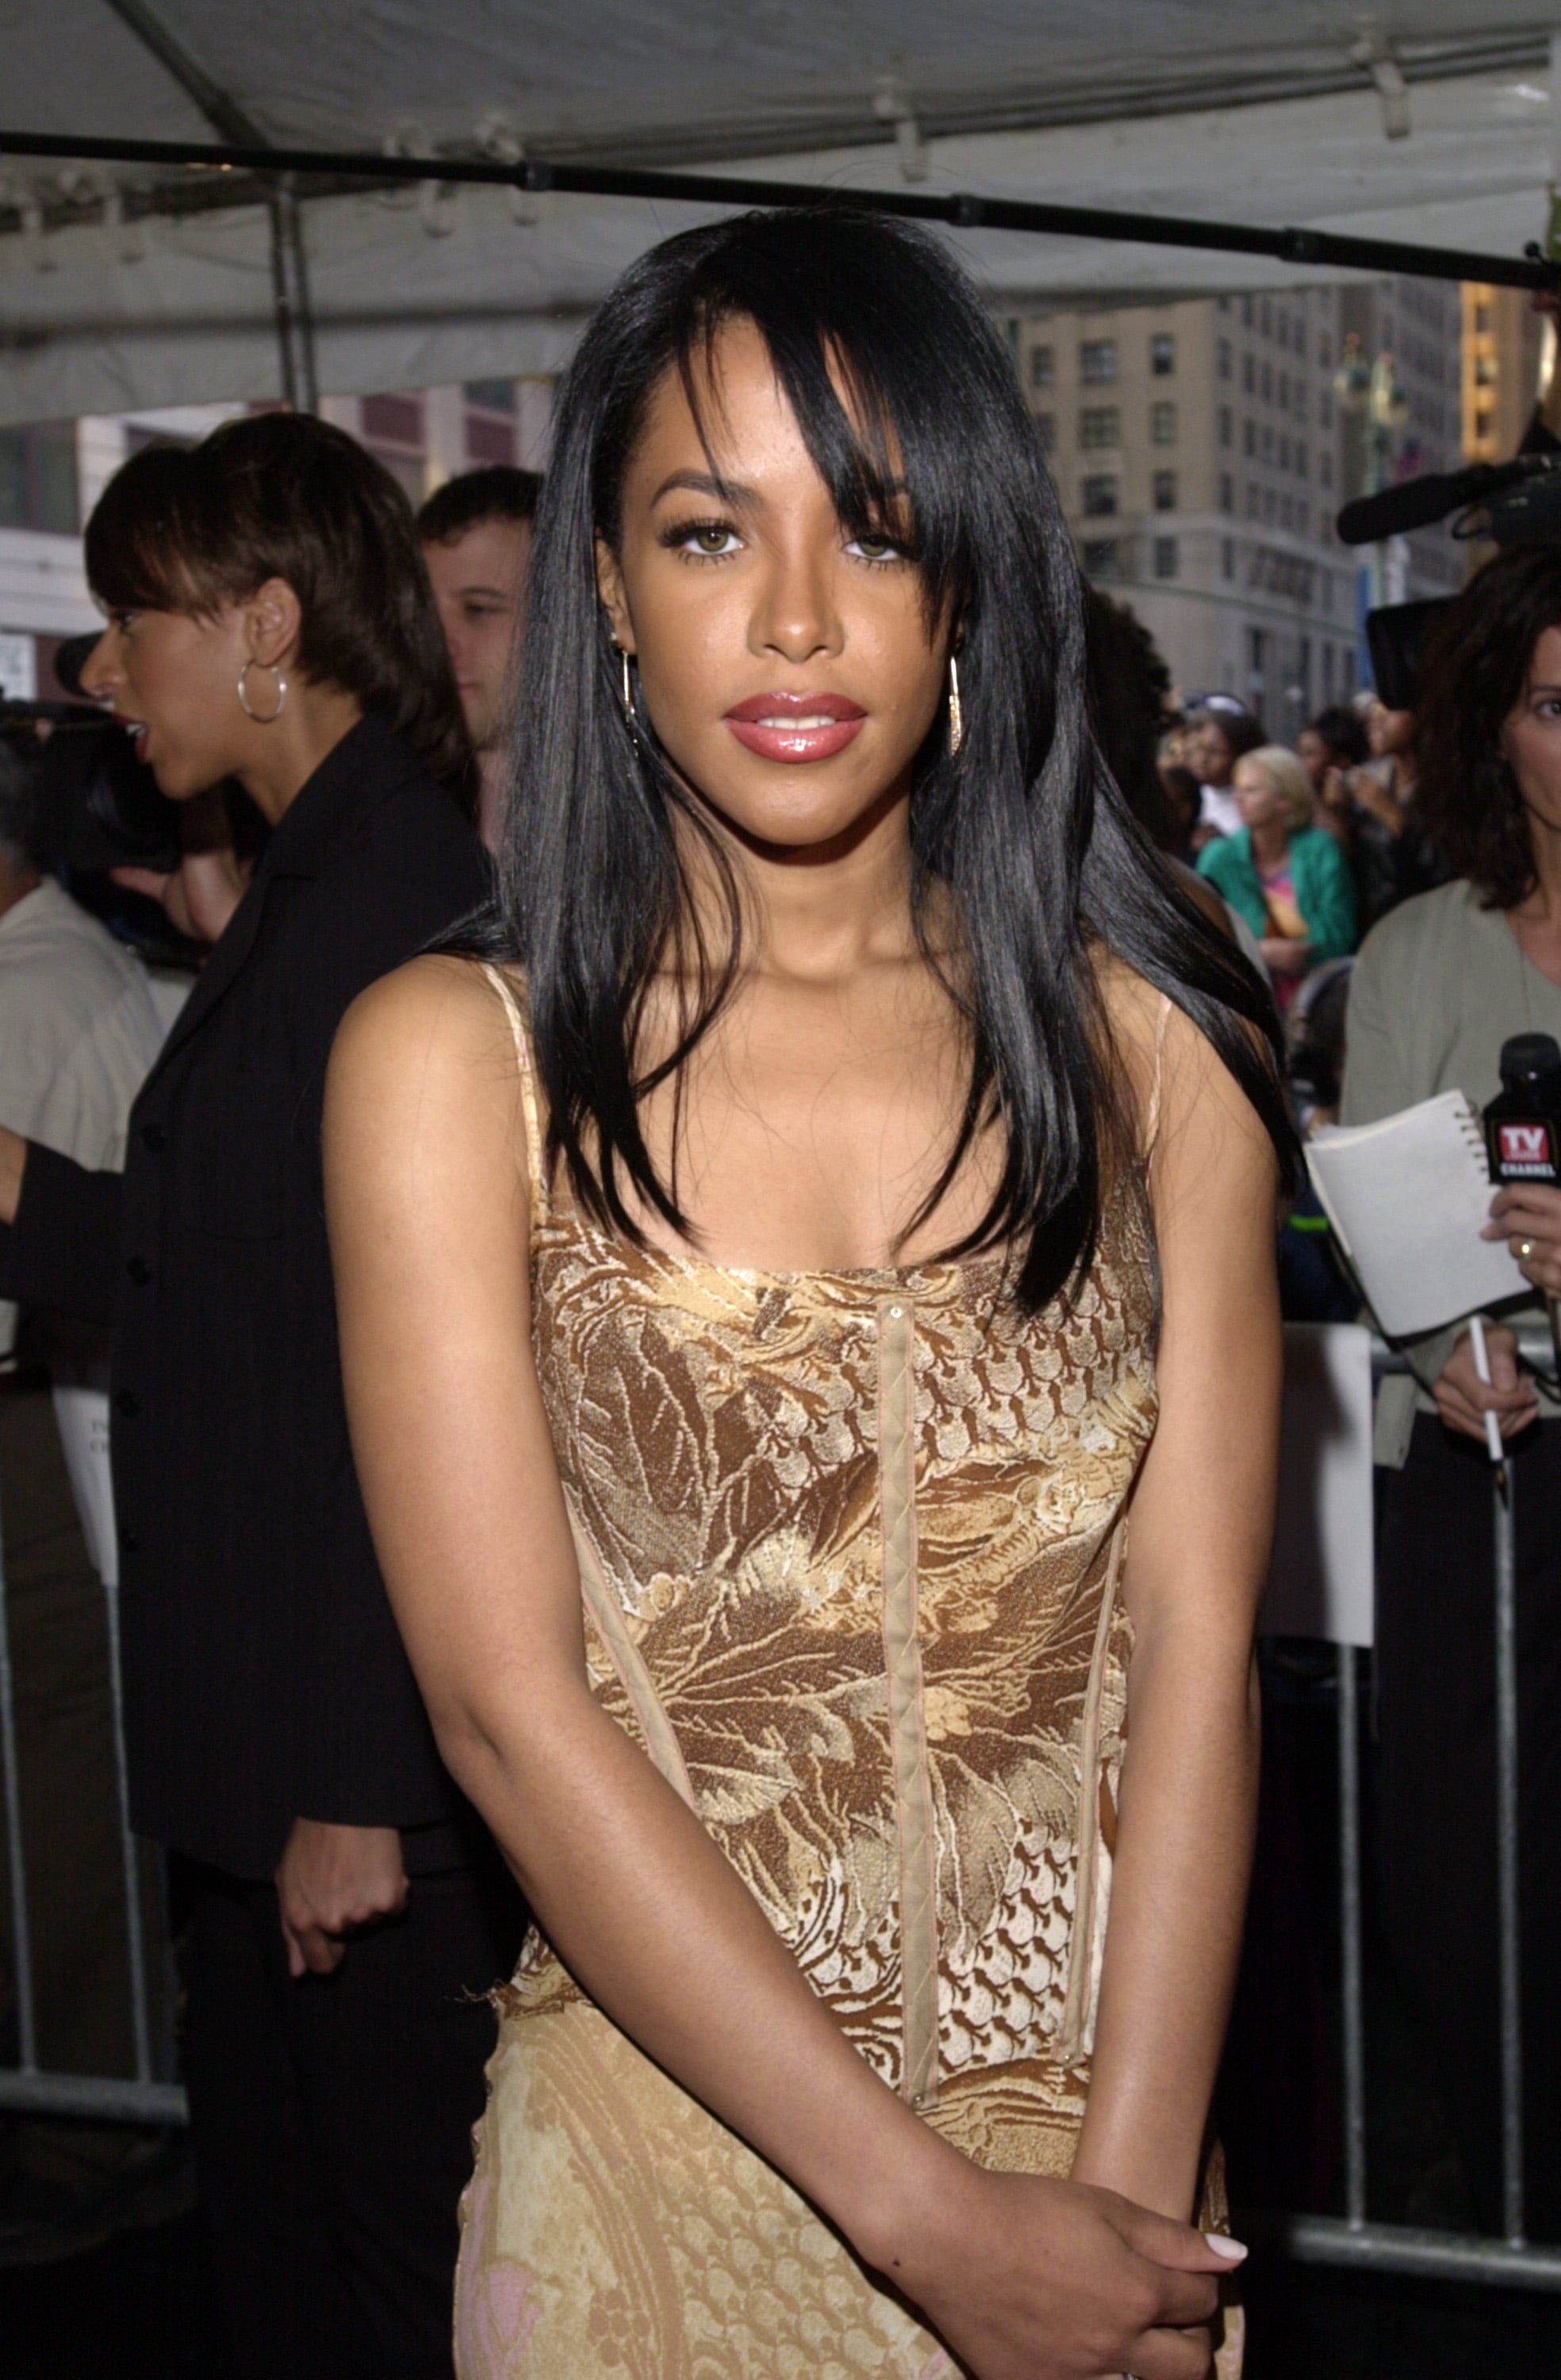 Aaliyah (Photo by RJ Capak/WireImage)